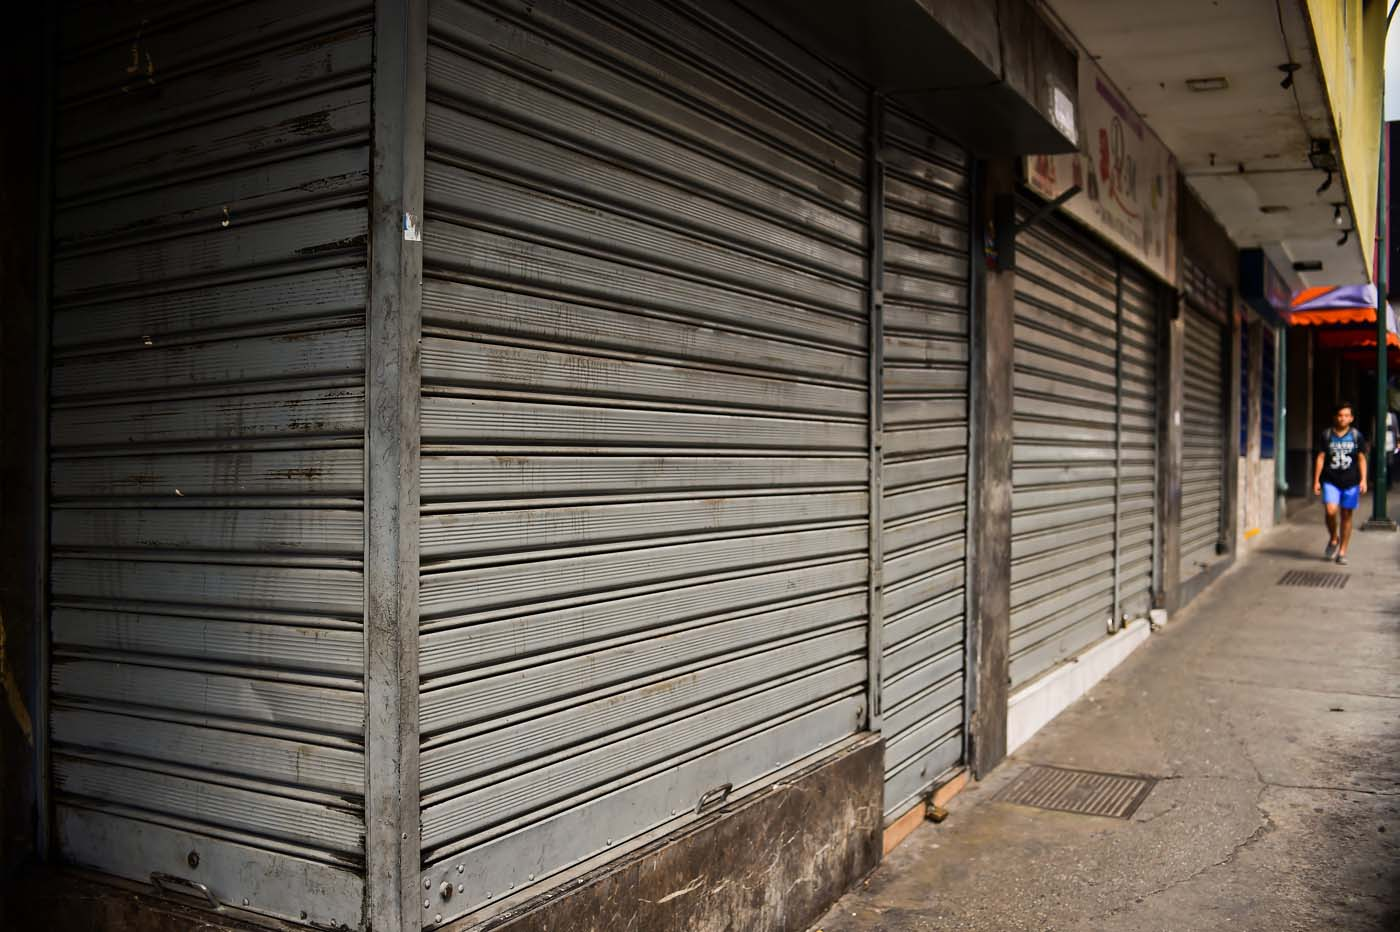 A woman walks by closed stores in Caracas, on October 28, 2016. Venezuela's opposition sought to pressure President Nicolas Maduro on Friday with a strike, which he threatened to break with army takeovers of paralyzed firms. The strike risks exacerbating the shortages of food and goods gripping the country, but it seemed to be only partially observed on Friday morning. / AFP PHOTO / RONALDO SCHEMIDT